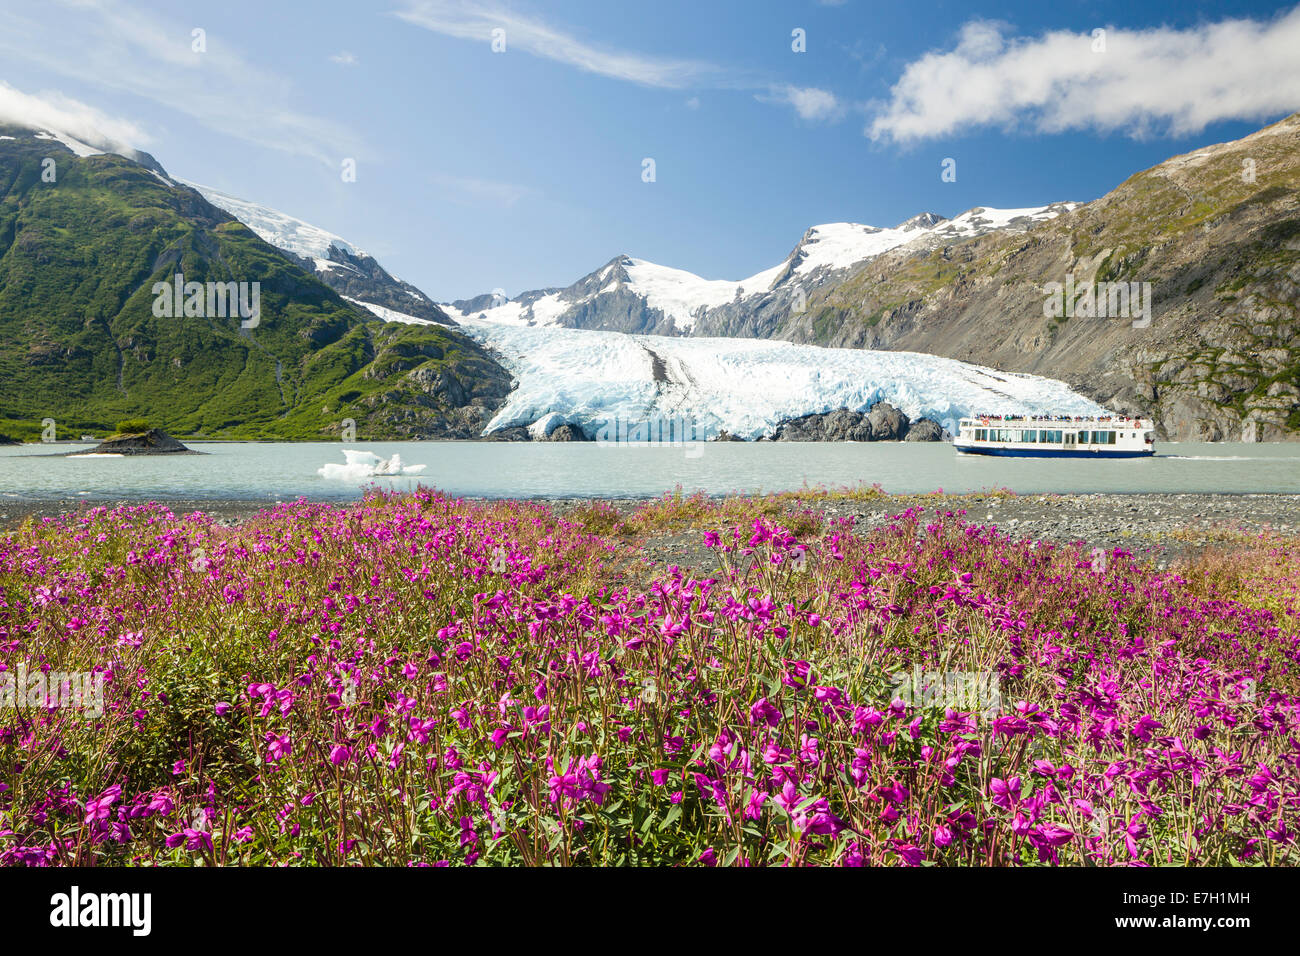 A tour boat explores Portage Lake with Portage Glacier in the Chugach National Forest of Portage Valley in Alaska. Stock Photo